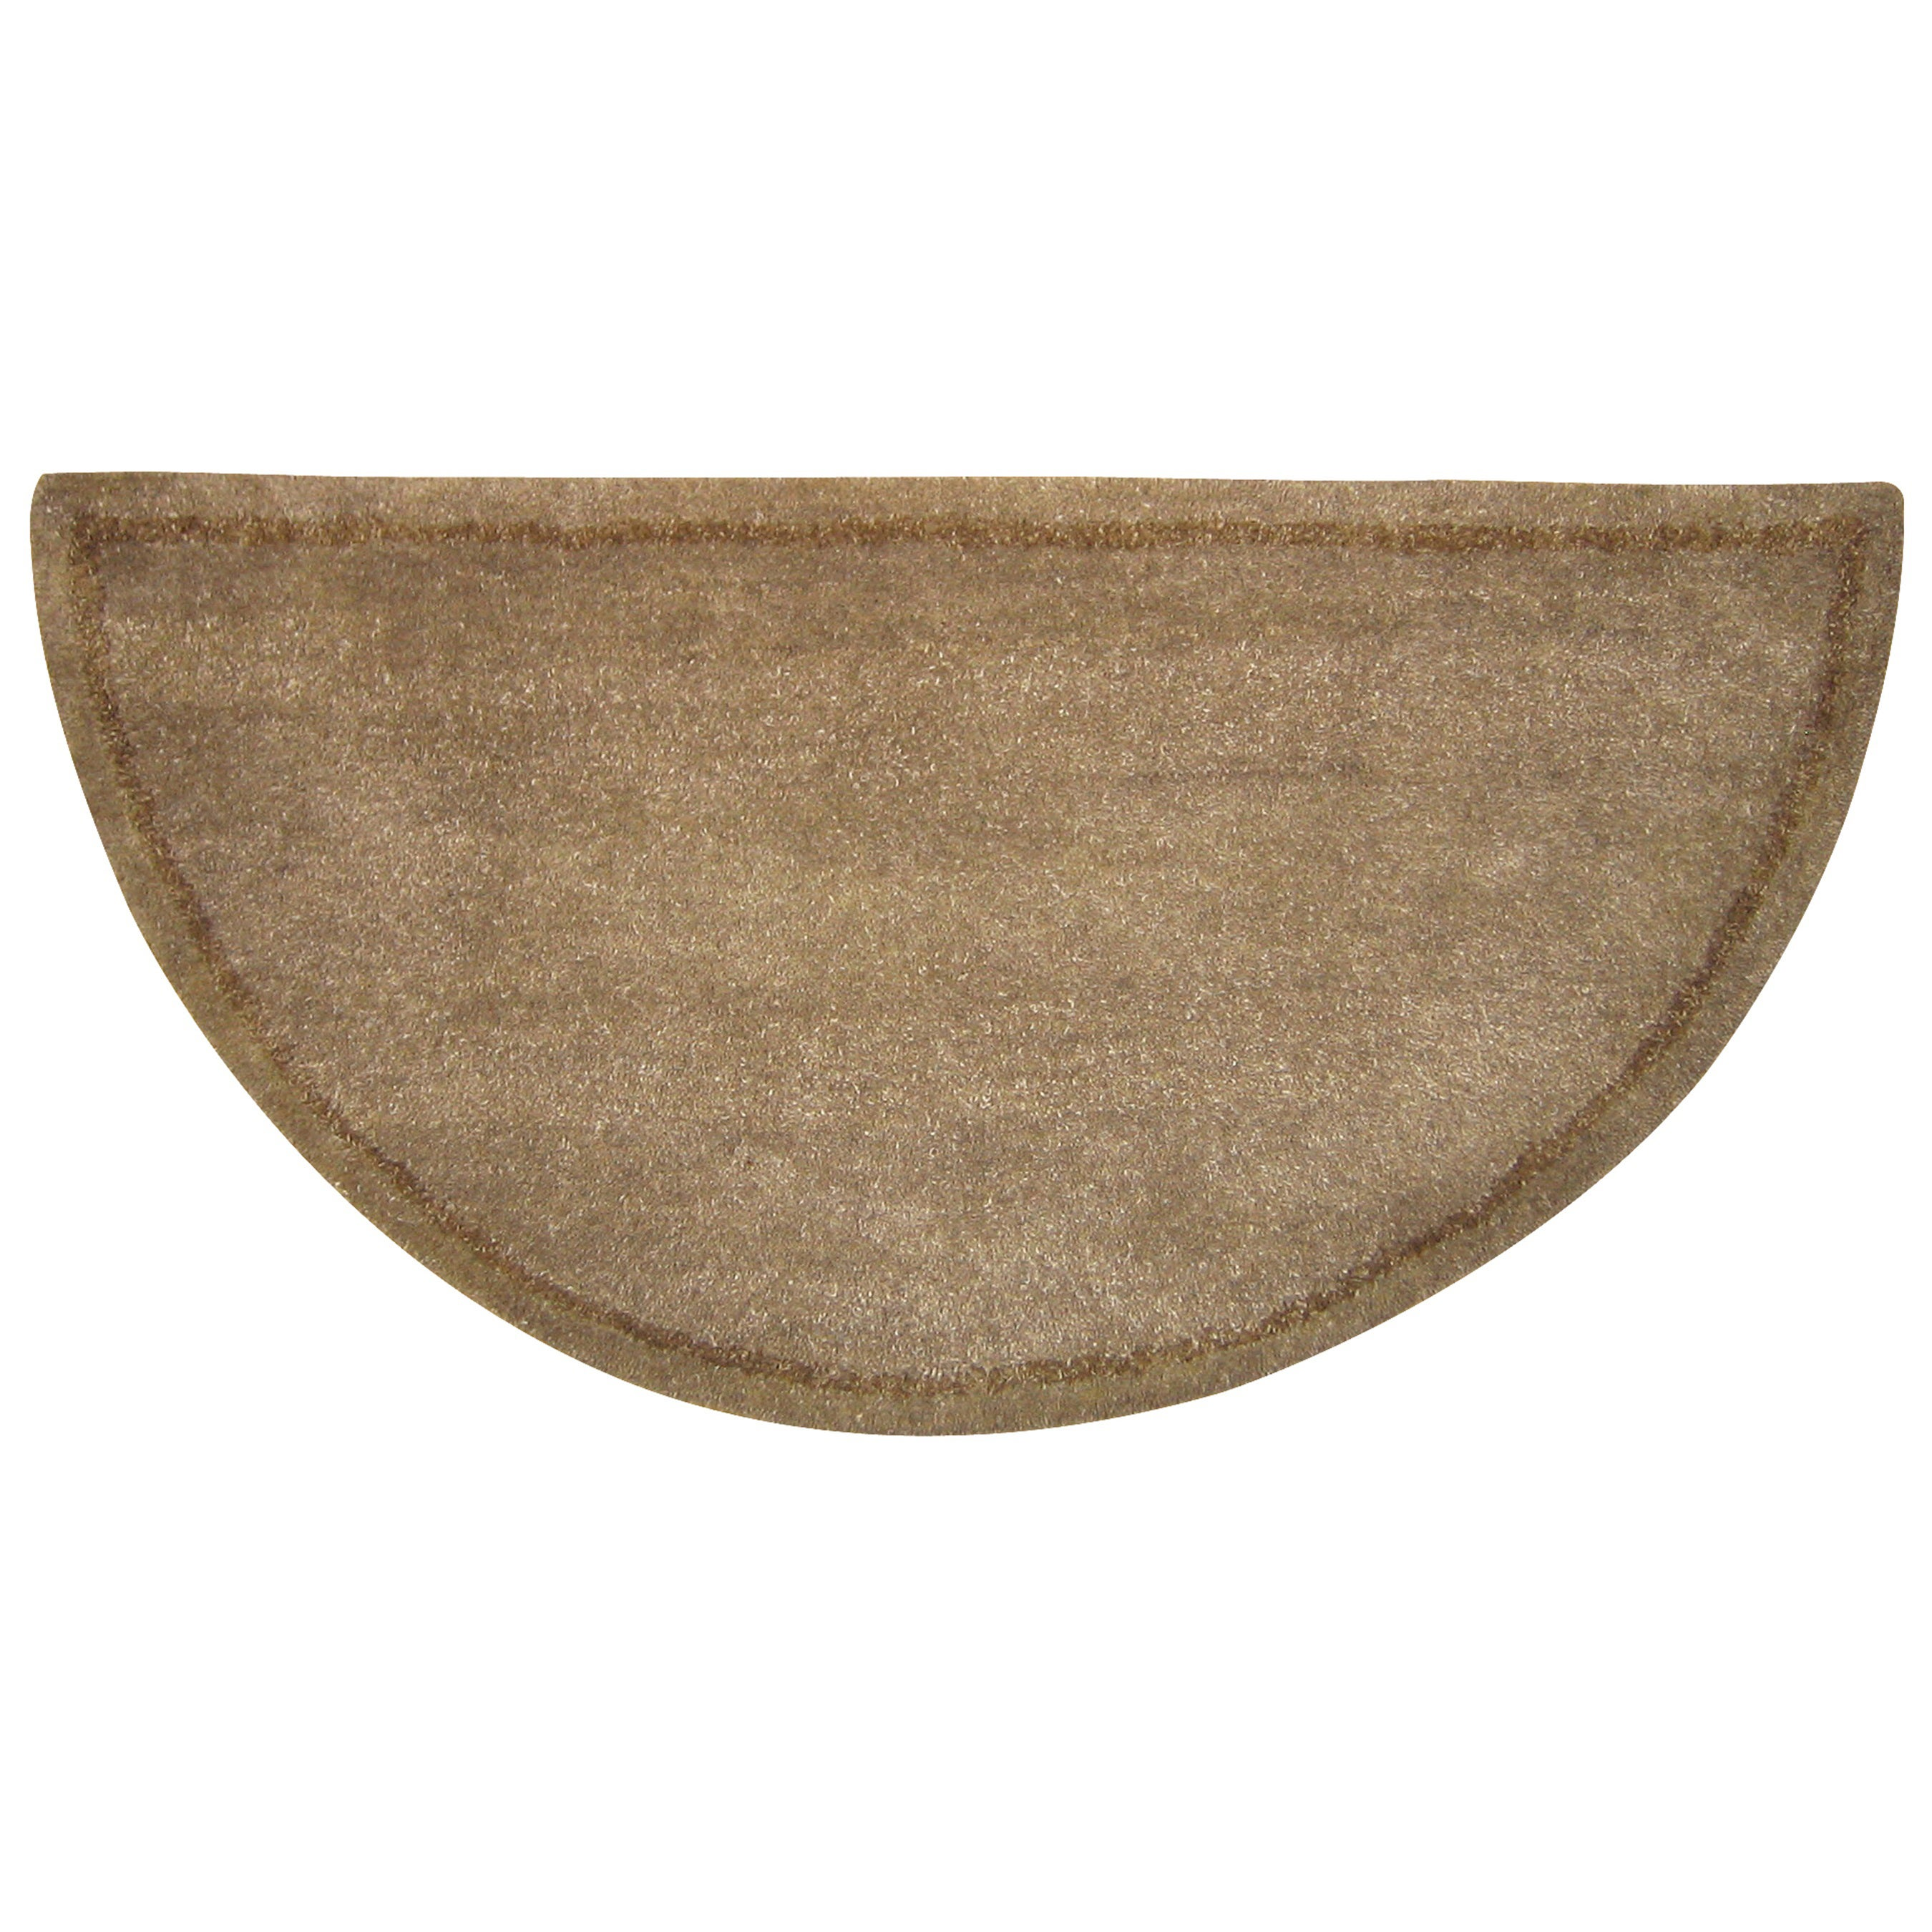 Blue Rhino Uf Hearth Beige Wool Rug 1 10 X 3 8